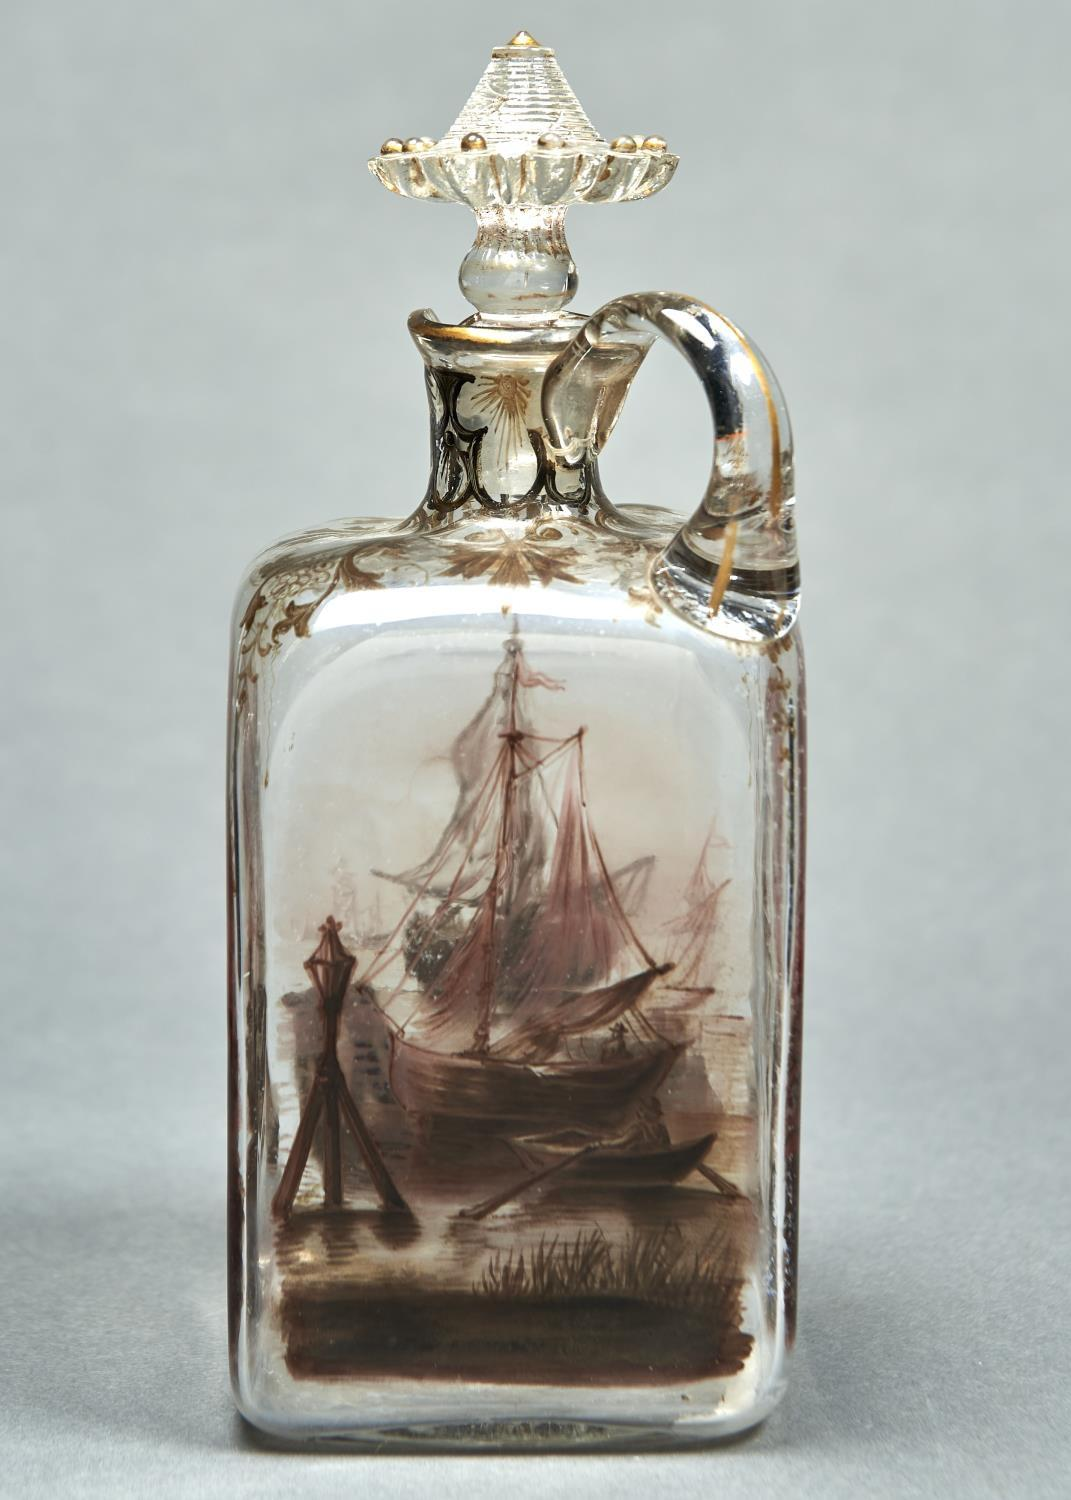 A LOW COUNTRIES ENAMELLED GLASS SPIRIT FLASK AND STOPPER, C1900, OF SQUARE SHAPE, PAINTED IN BROWN